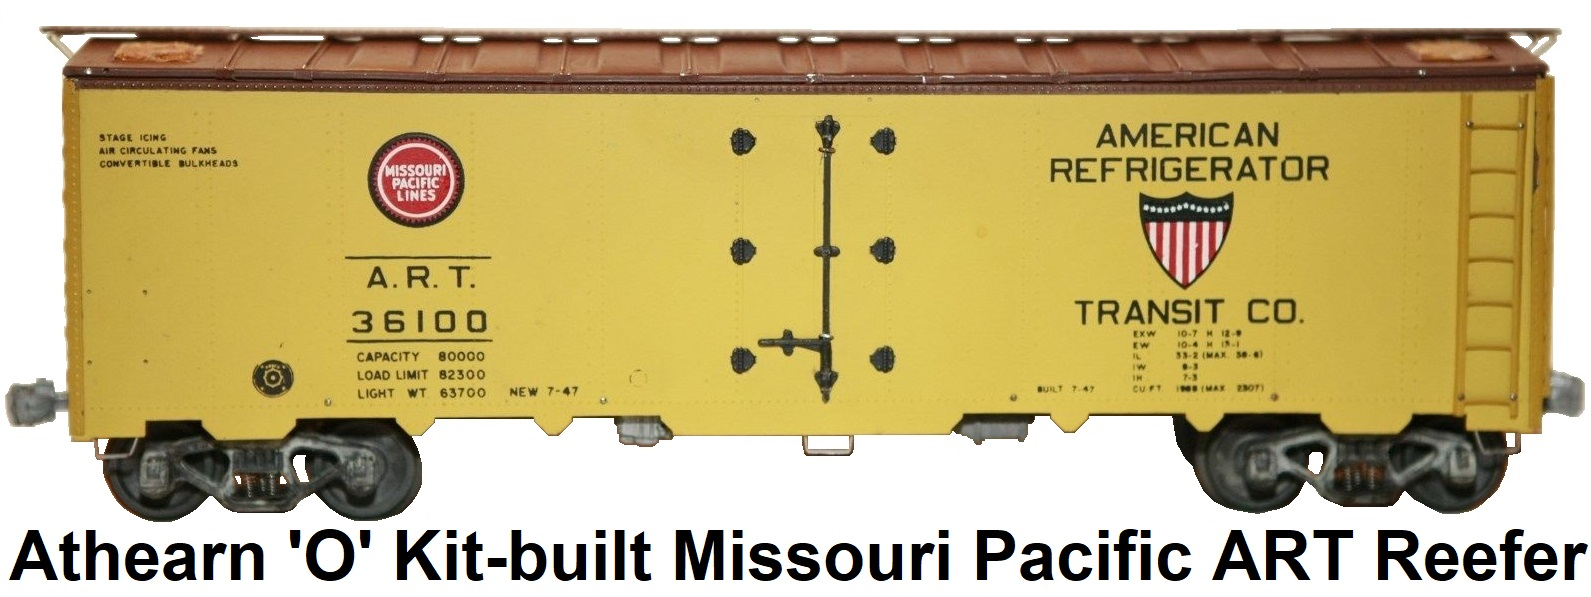 Athearn 'O' scale Kit-built 2-rail Missouri Pacific Lines American Refrigerator Transit Co. Reefer #36100